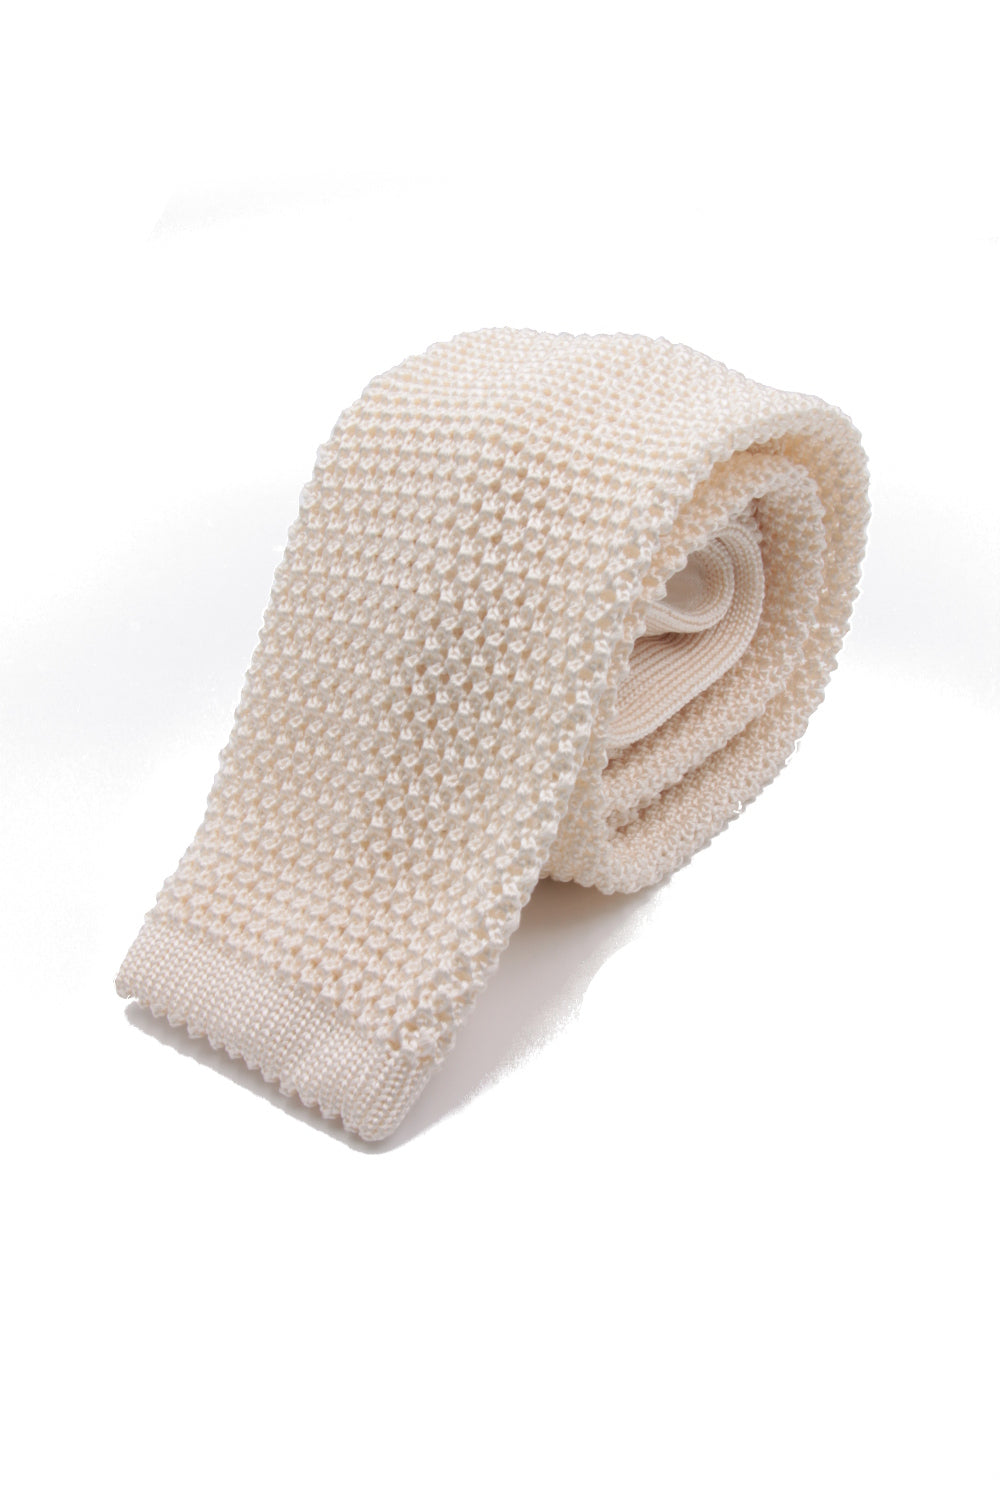 Bright ivory knitted tie